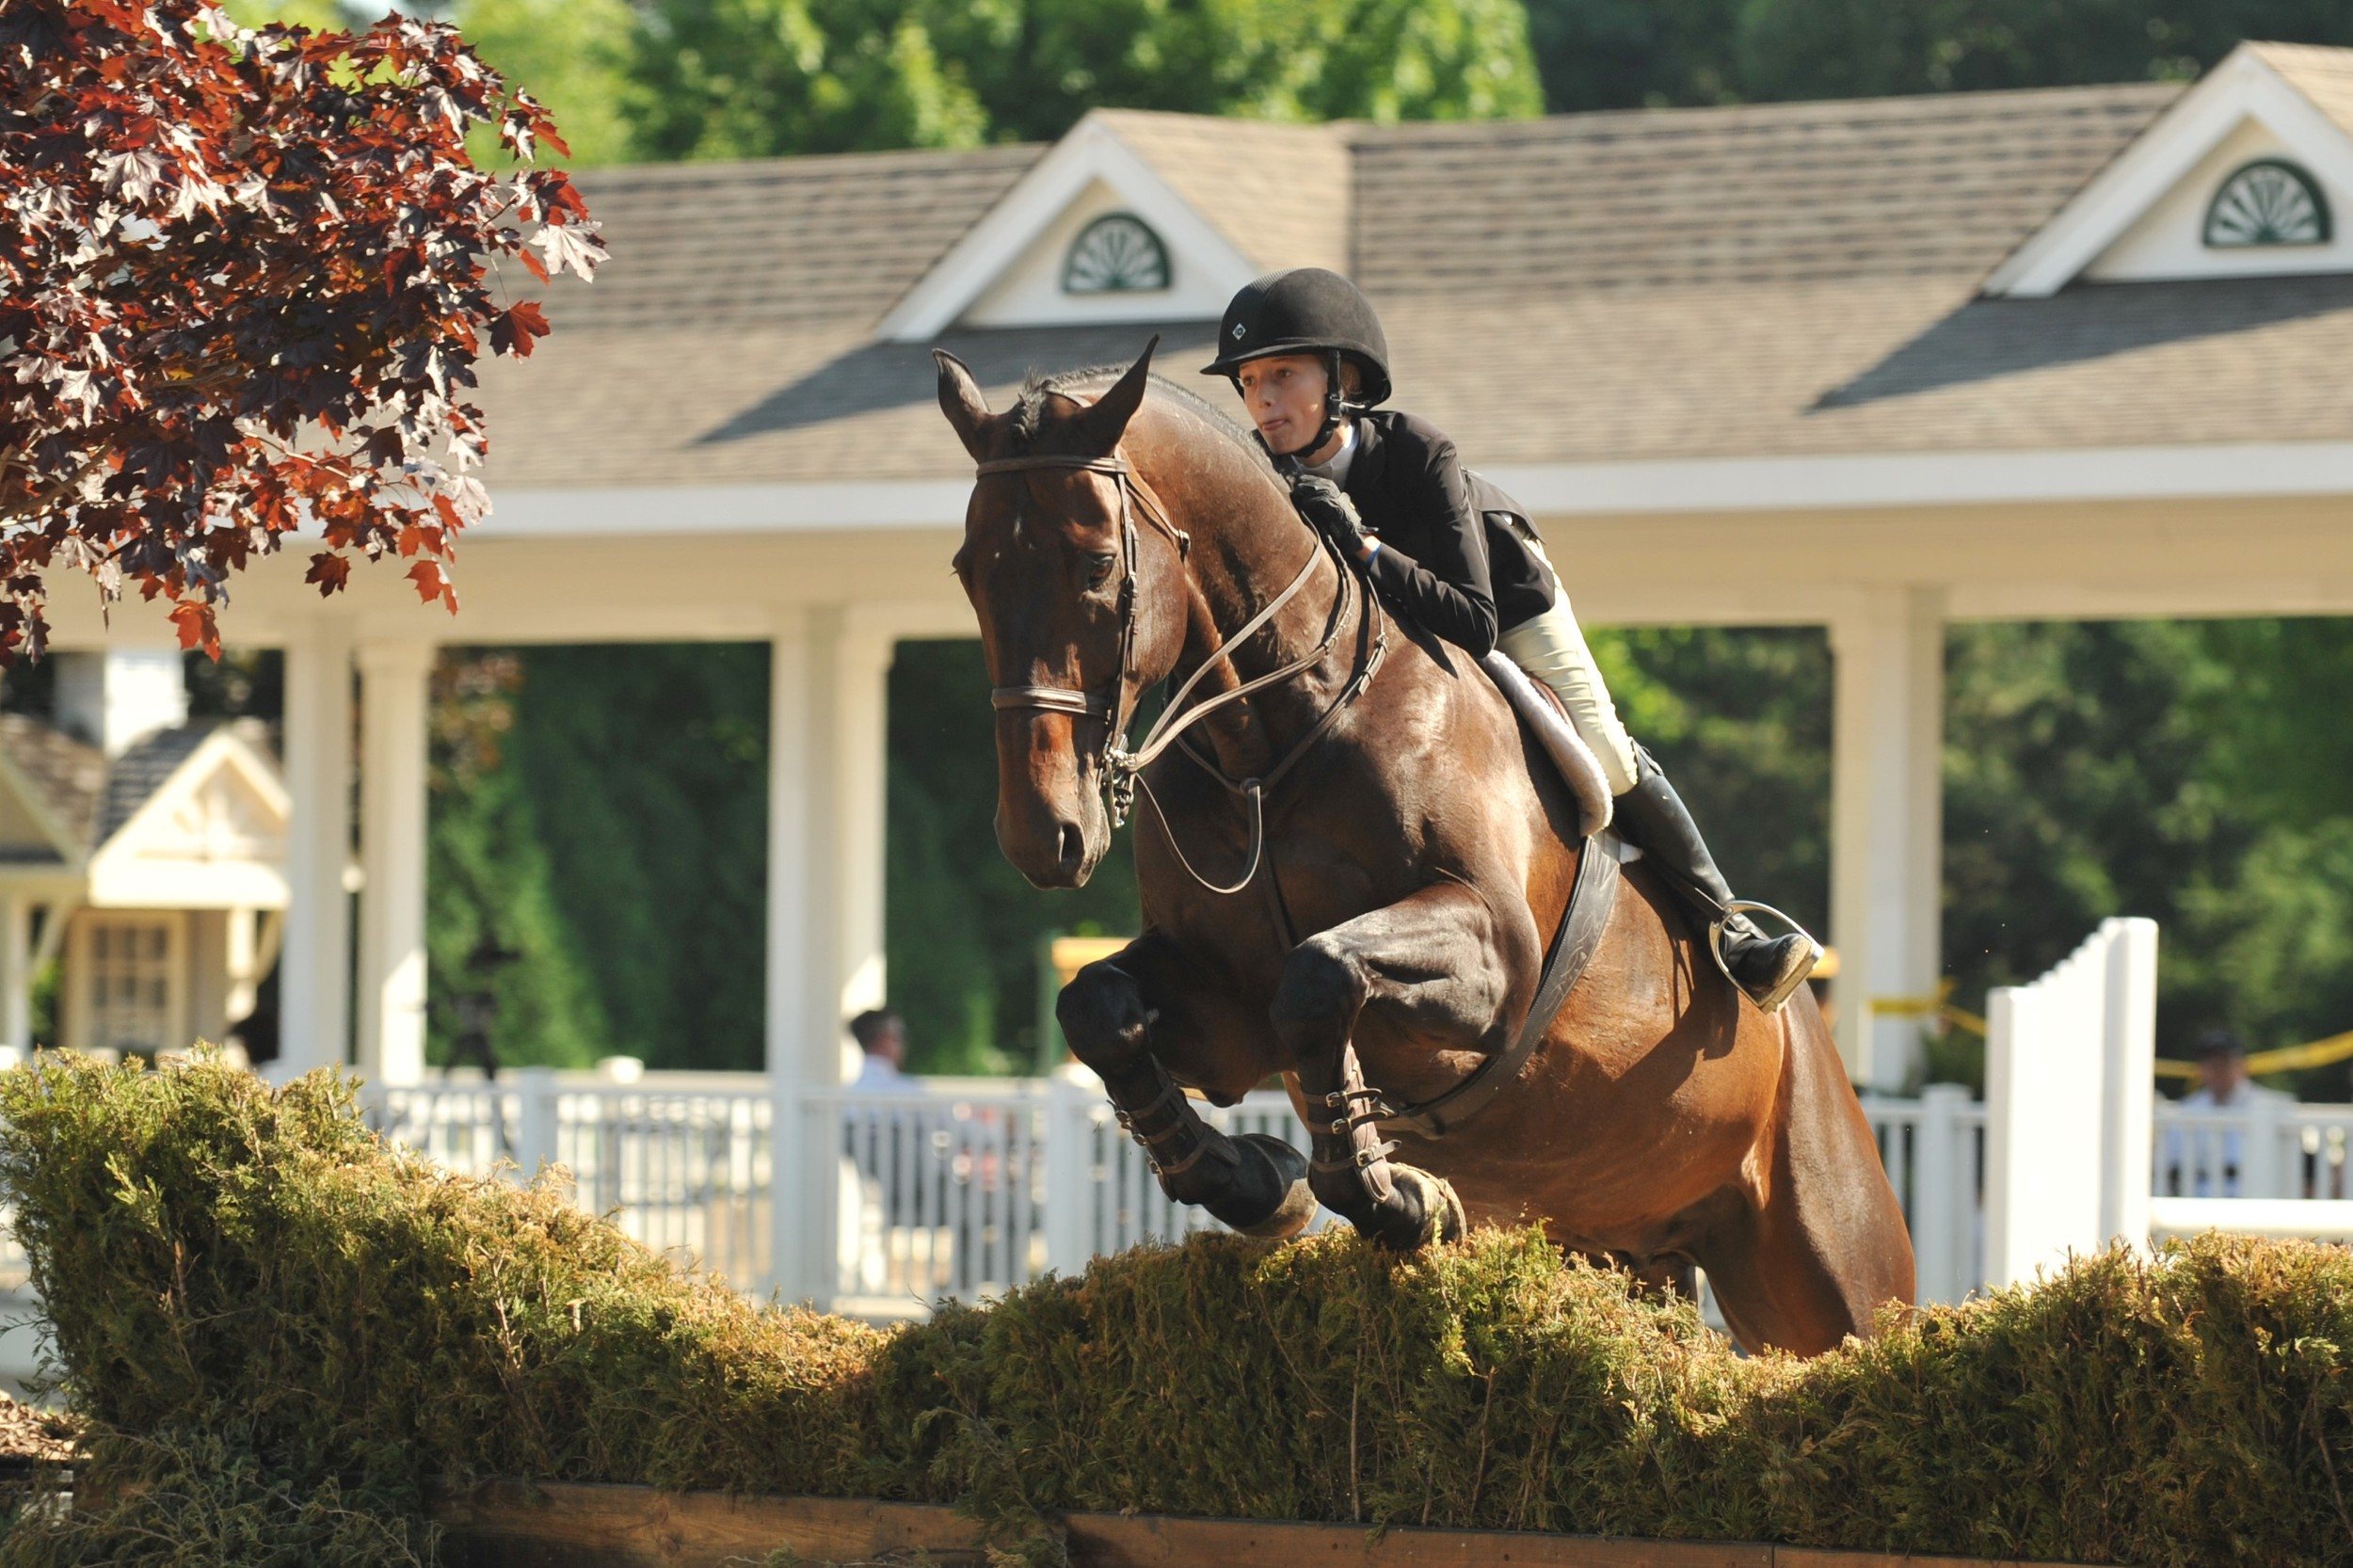 Photo by Andrew Ryback Photography  USEF/Pessoa Hunt Seat Medal  Natalie Jayne riding her horse Cyril Van de Mespel Z